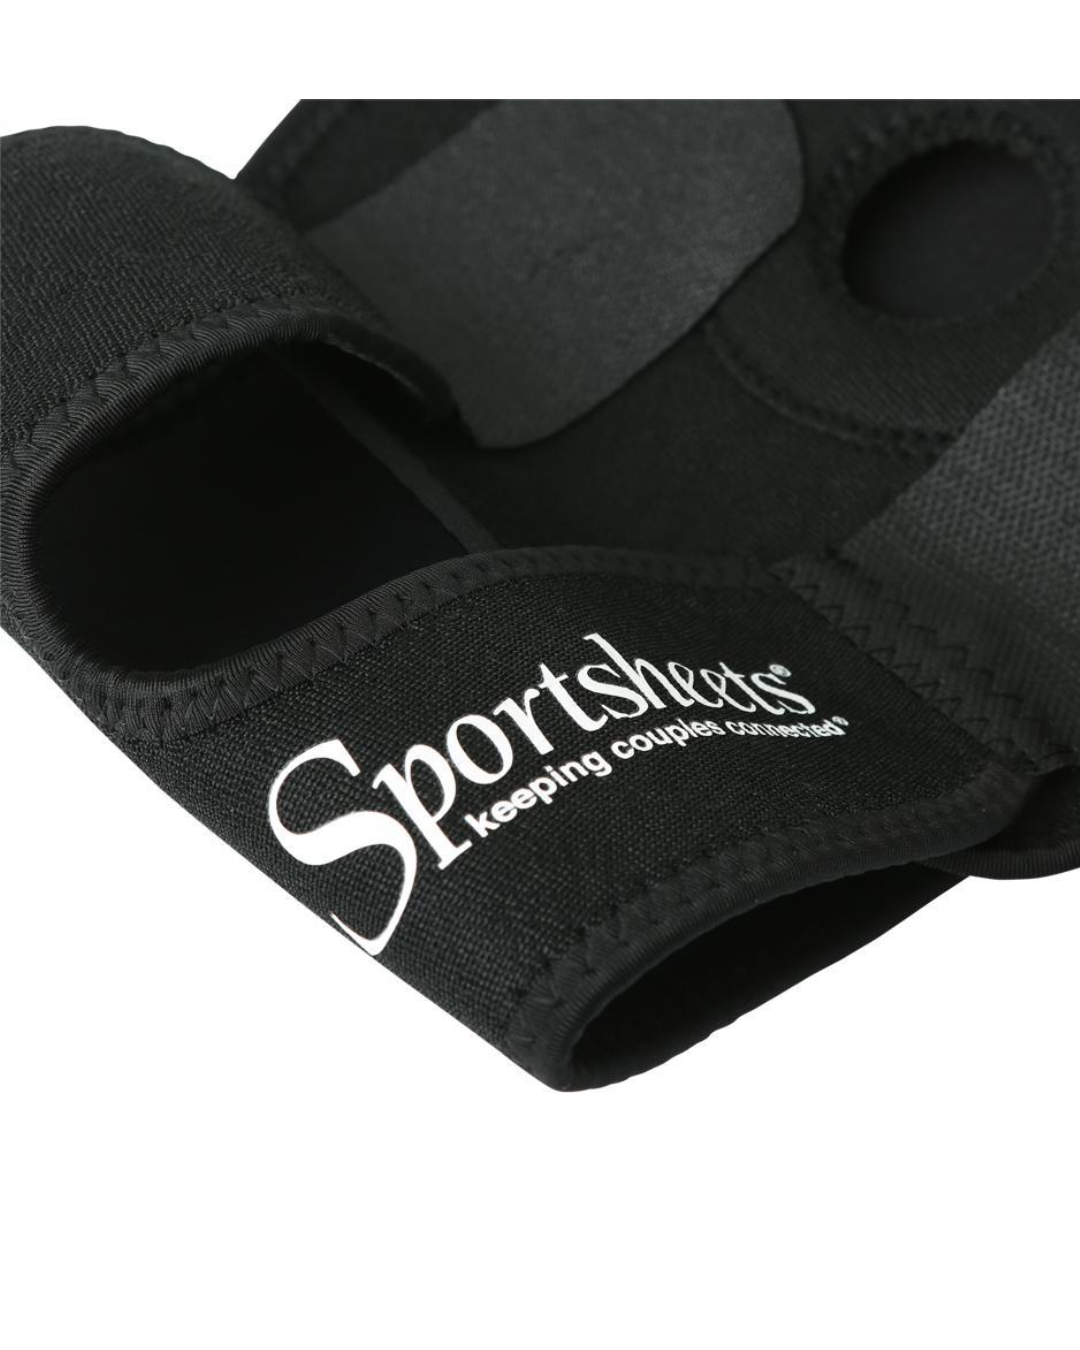 Strap On Thigh Harness by Sportsheets -  Black close up of velcro closures